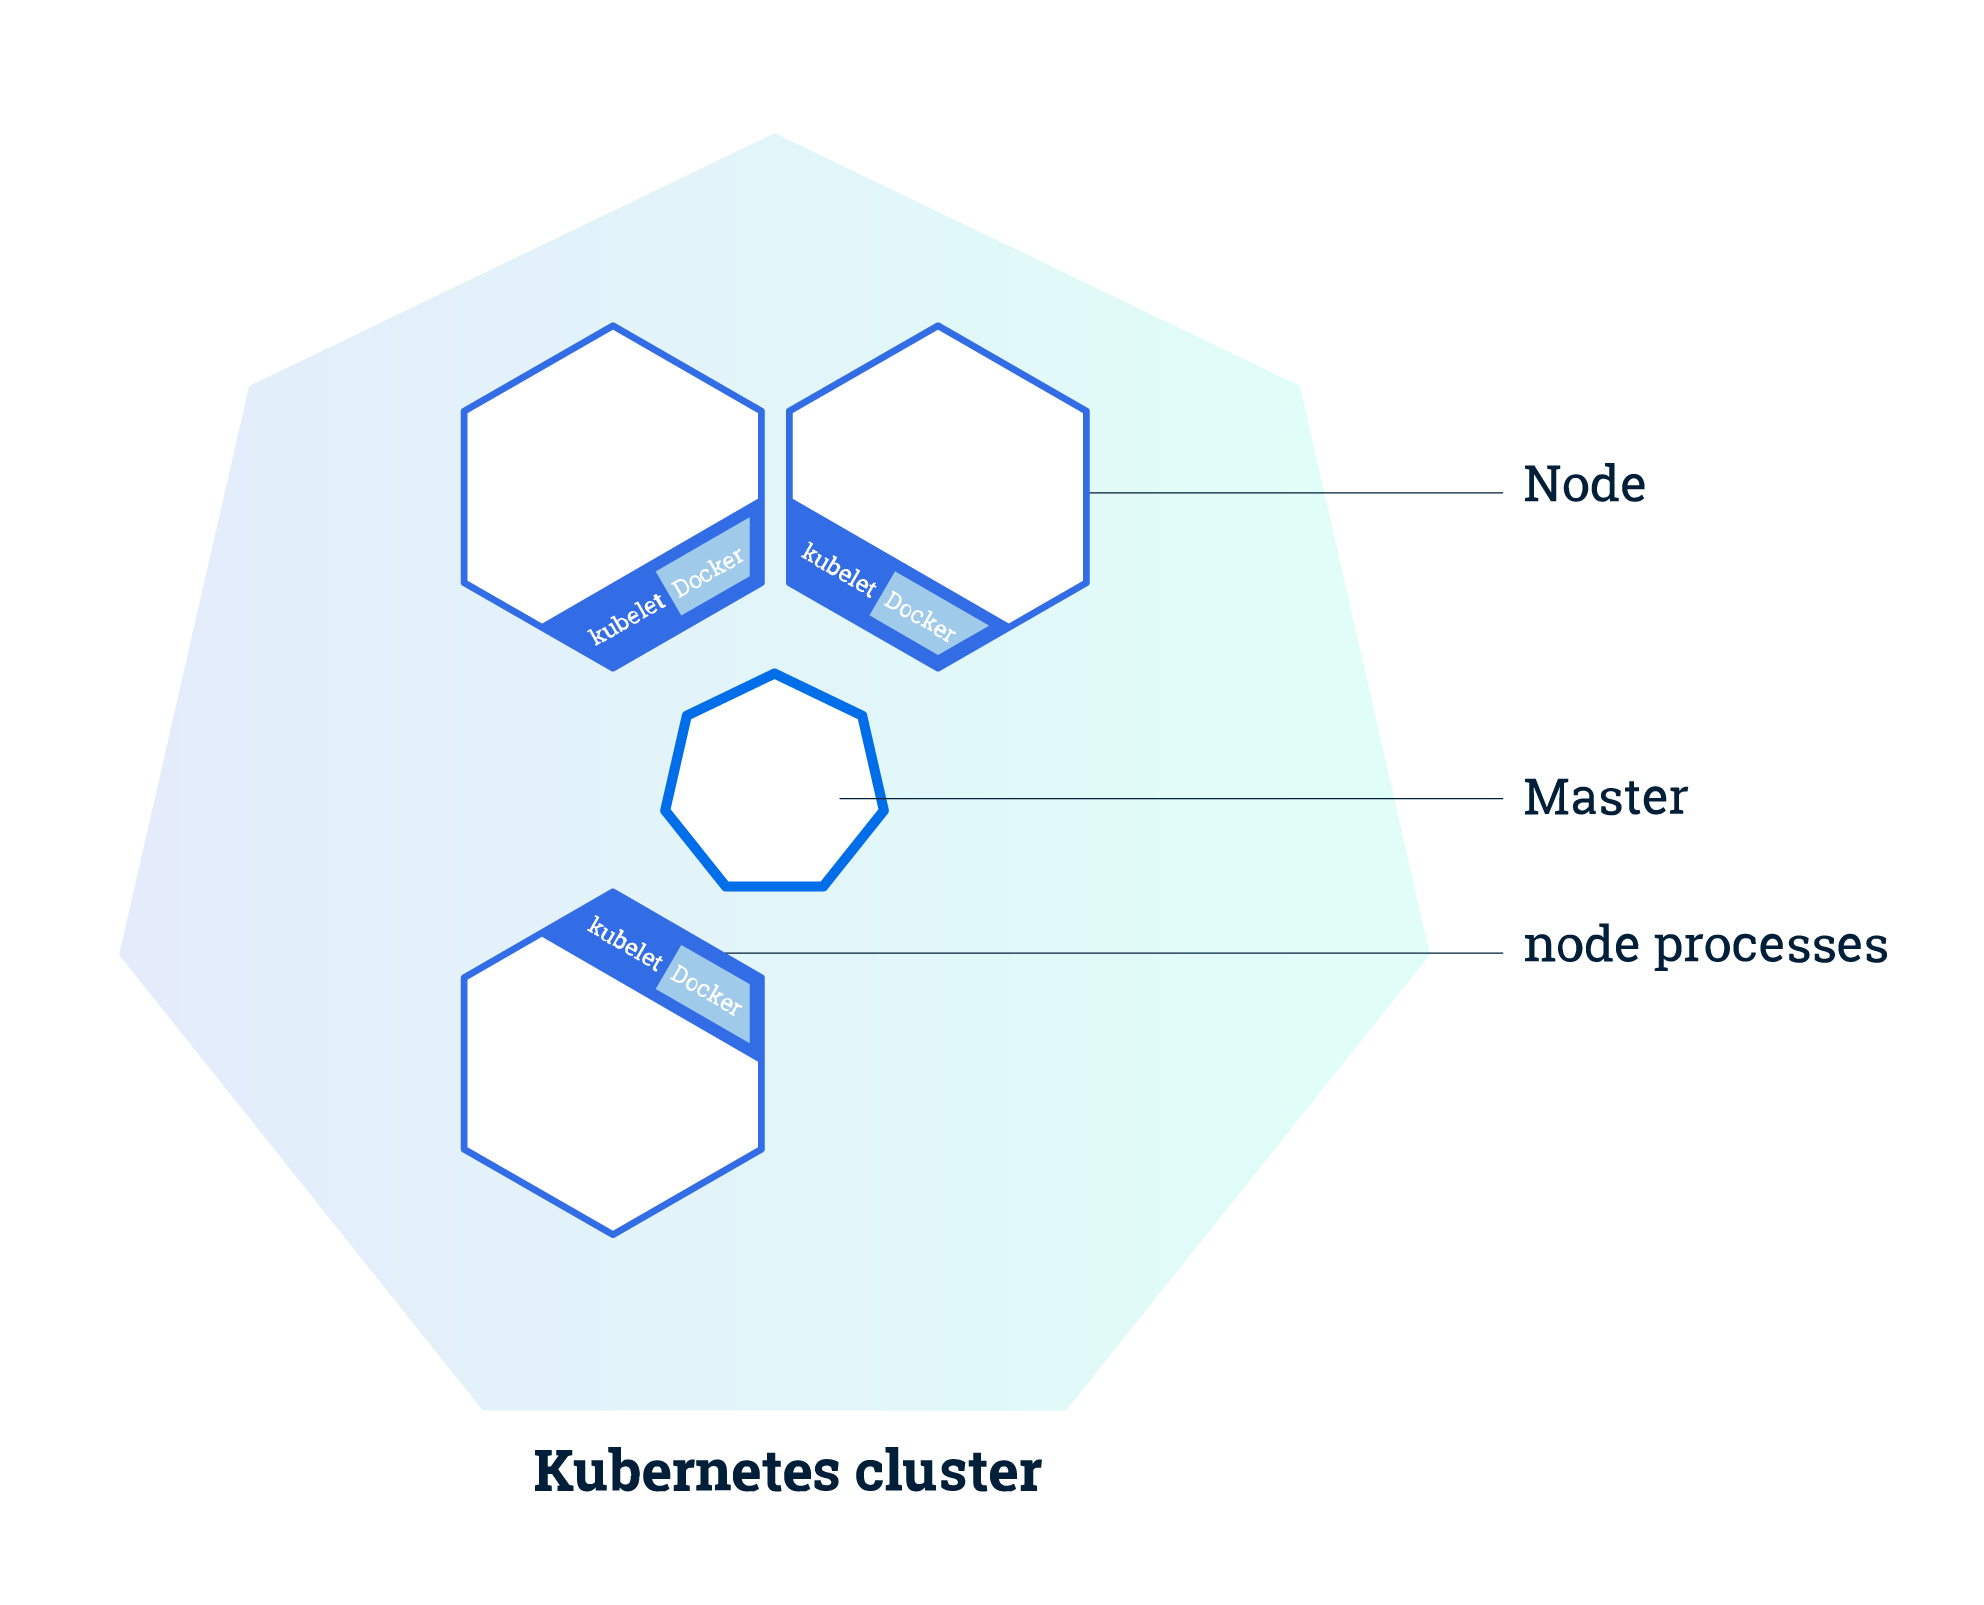 Minikube architecture (source: kubernetes.io)